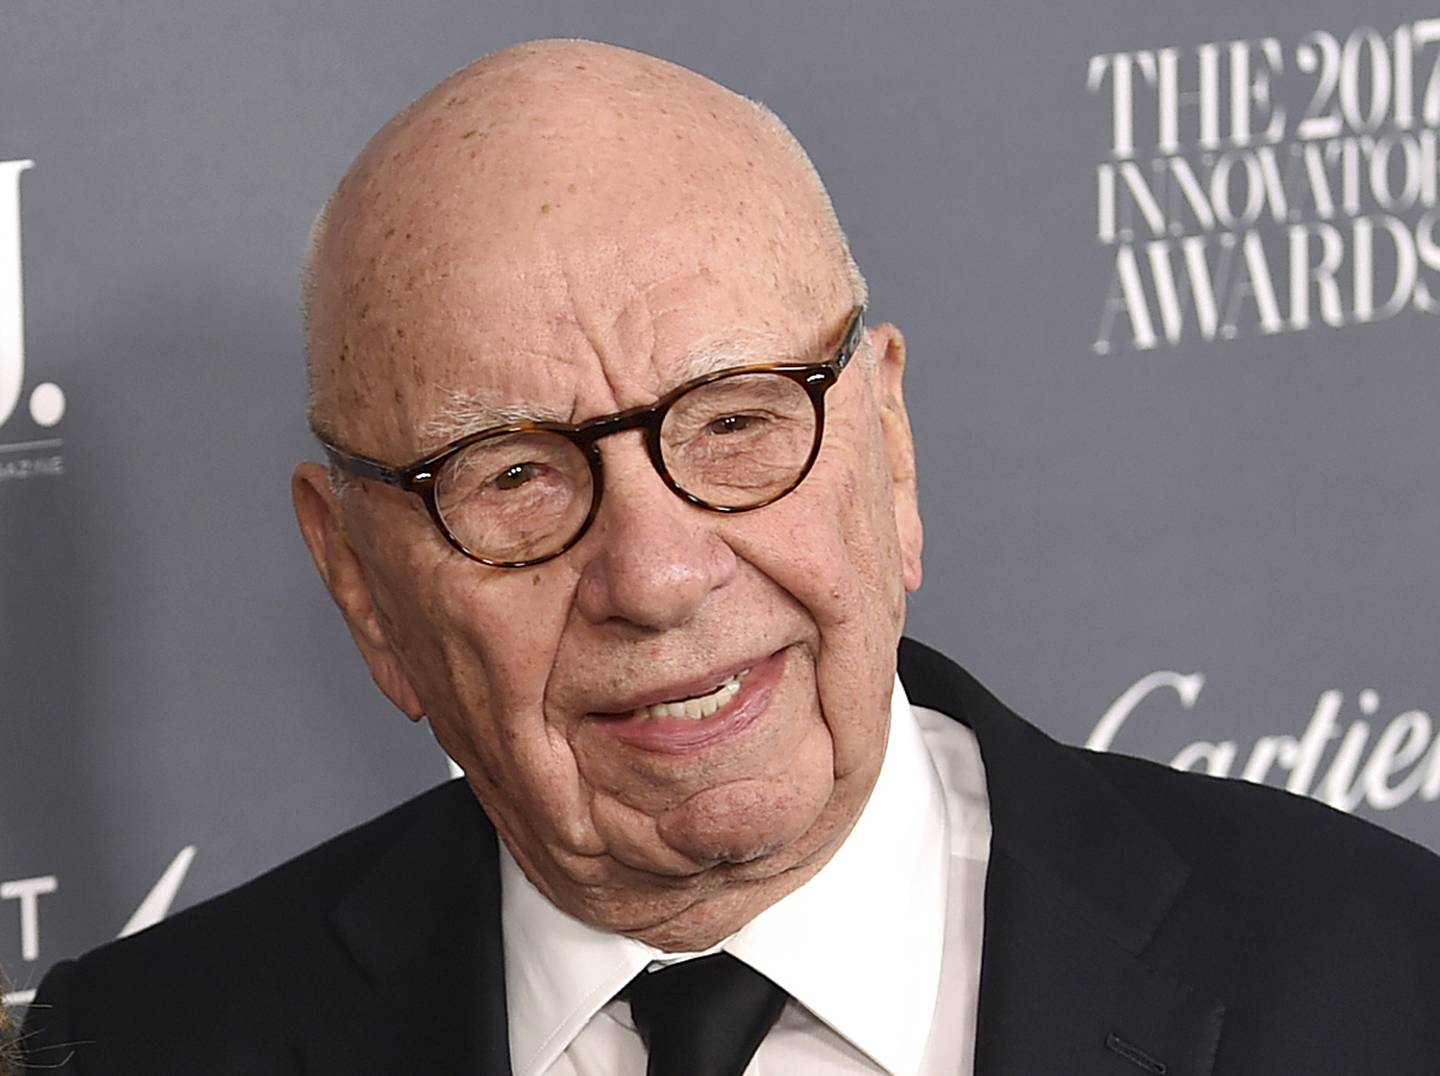 FILE - In this Wednesday, Nov. 1, 2017, file photo, Fox News chairman and CEO Rupert Murdoch attends the WSJ. Magazine 2017 Innovator Awards at The Museum of Modern Art in New York. Murdoch has told senior managers at 21st Century Fox that he will be working from home for a few weeks after a recent back injury in a sailing accident. (Photo by Evan Agostini/Invision/AP, File)